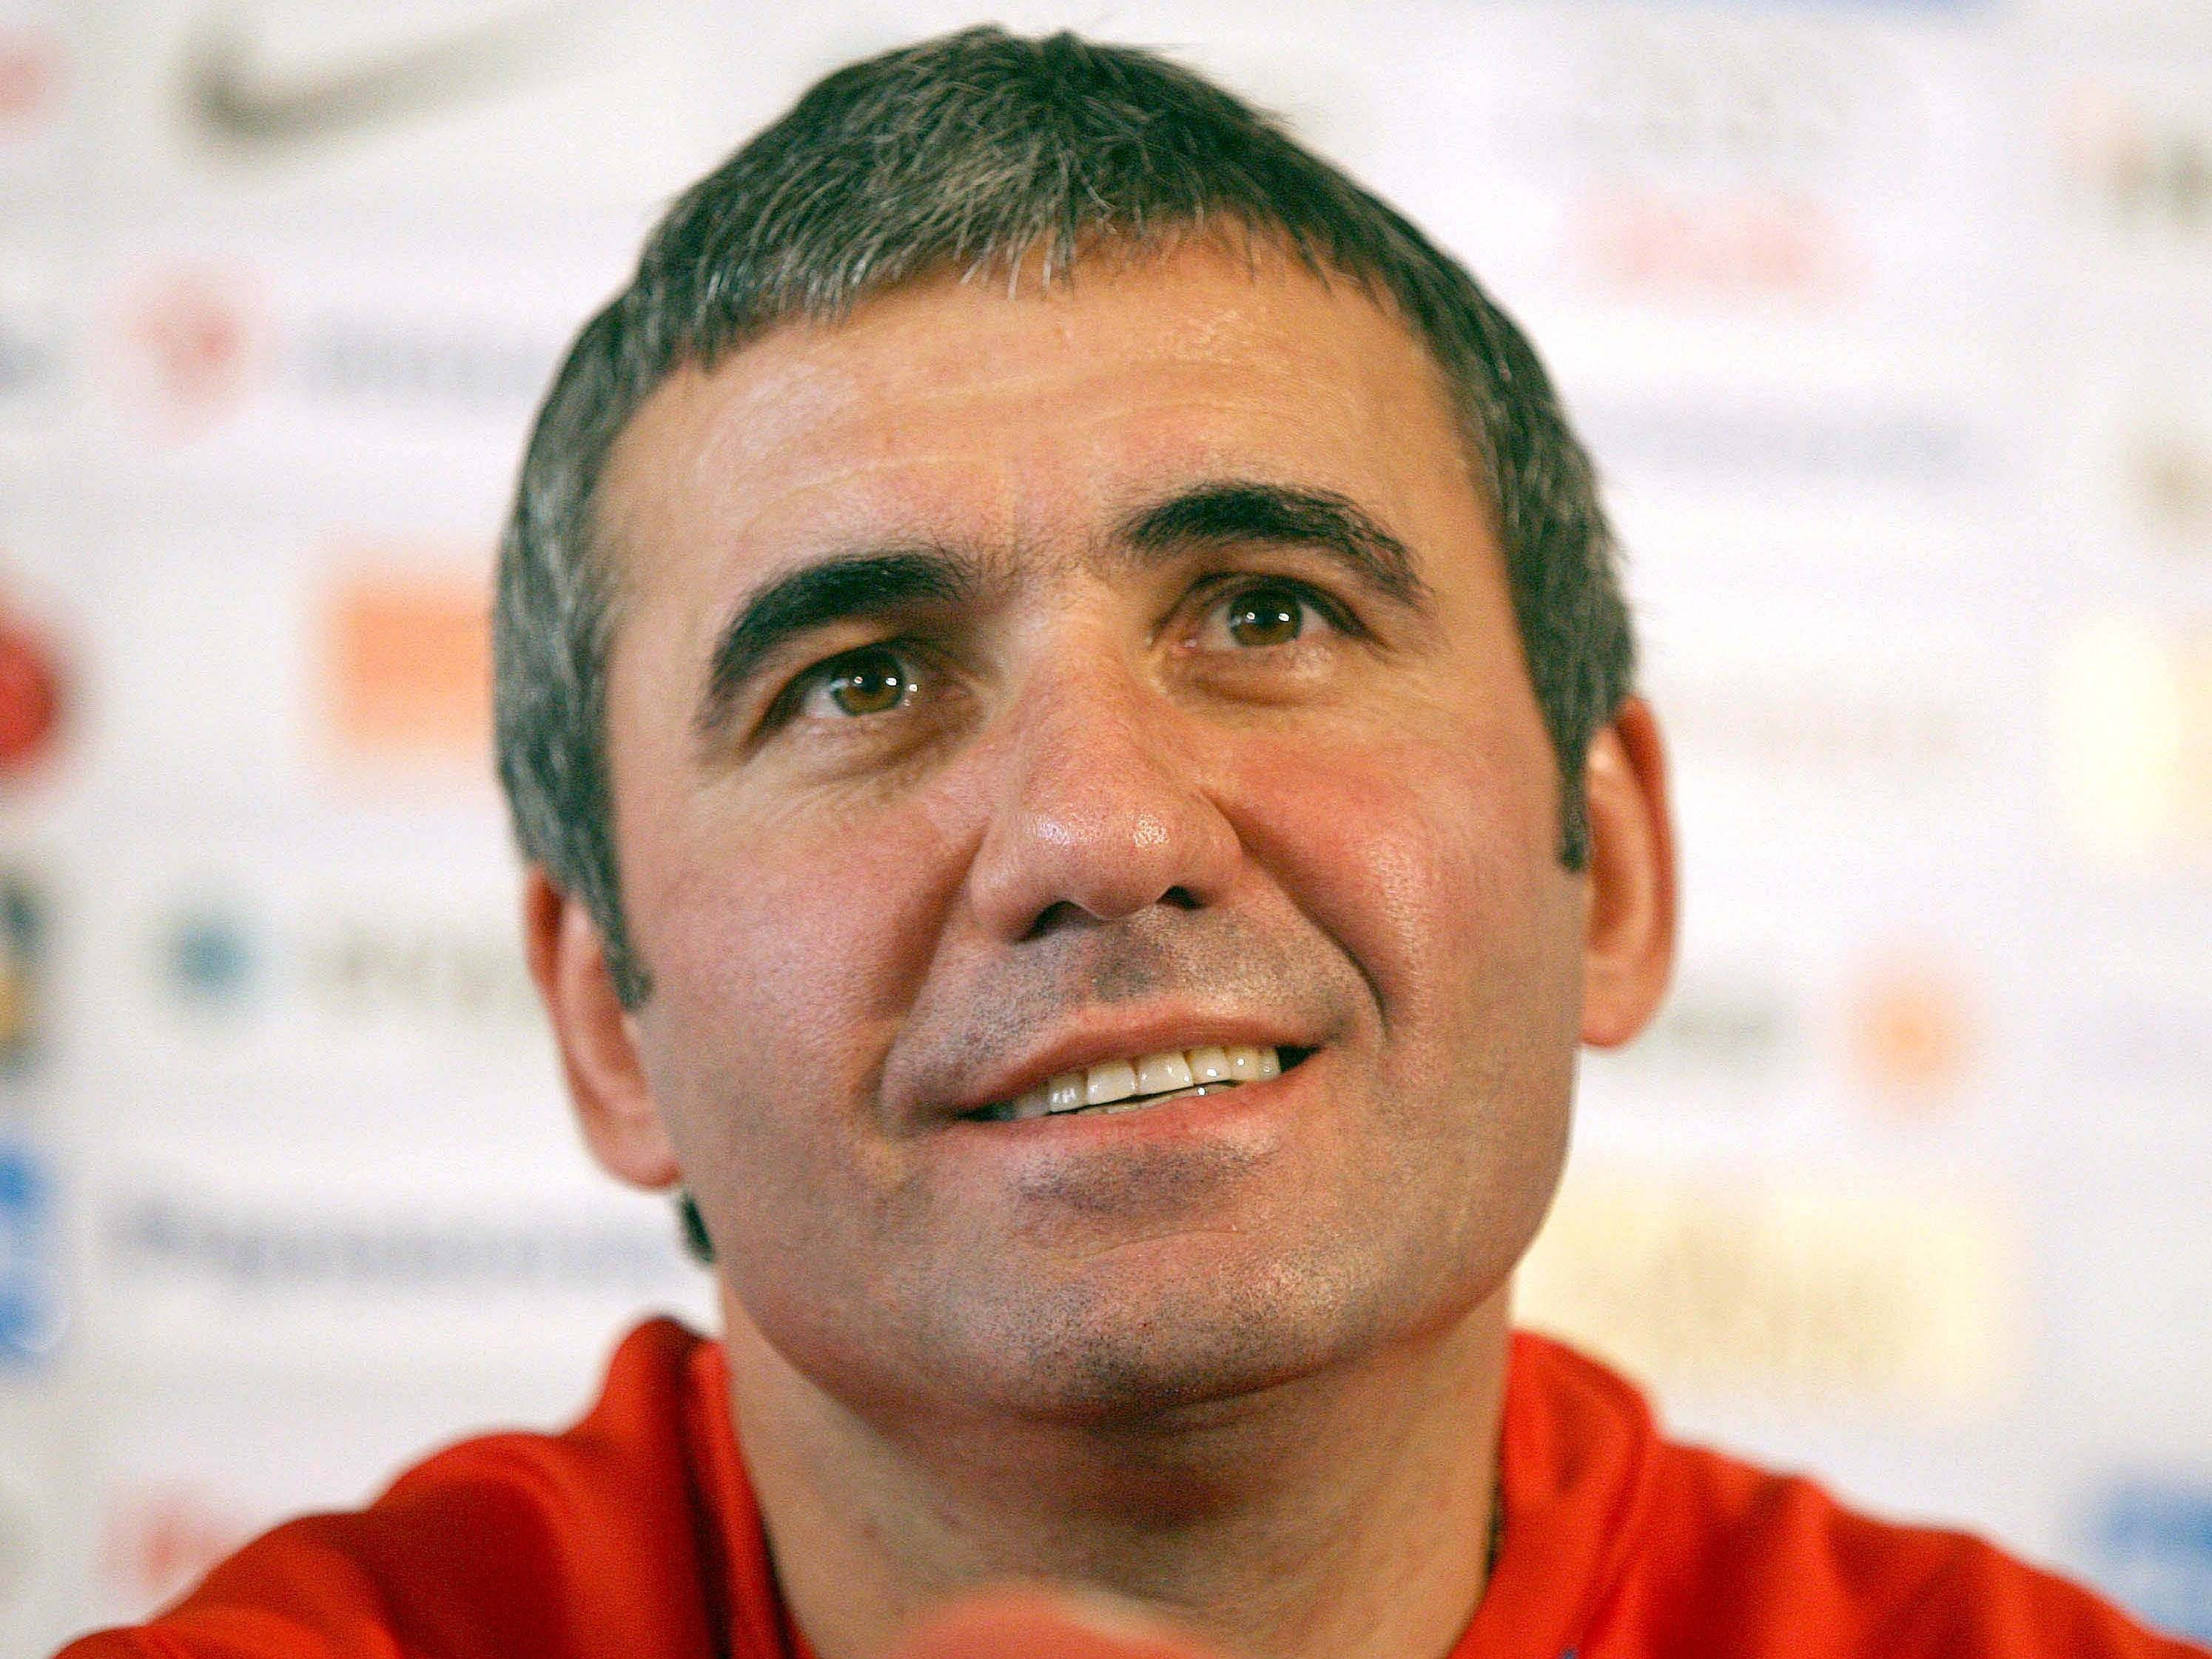 soccer Galatasaray SK Gheorghe HD Wallpaper